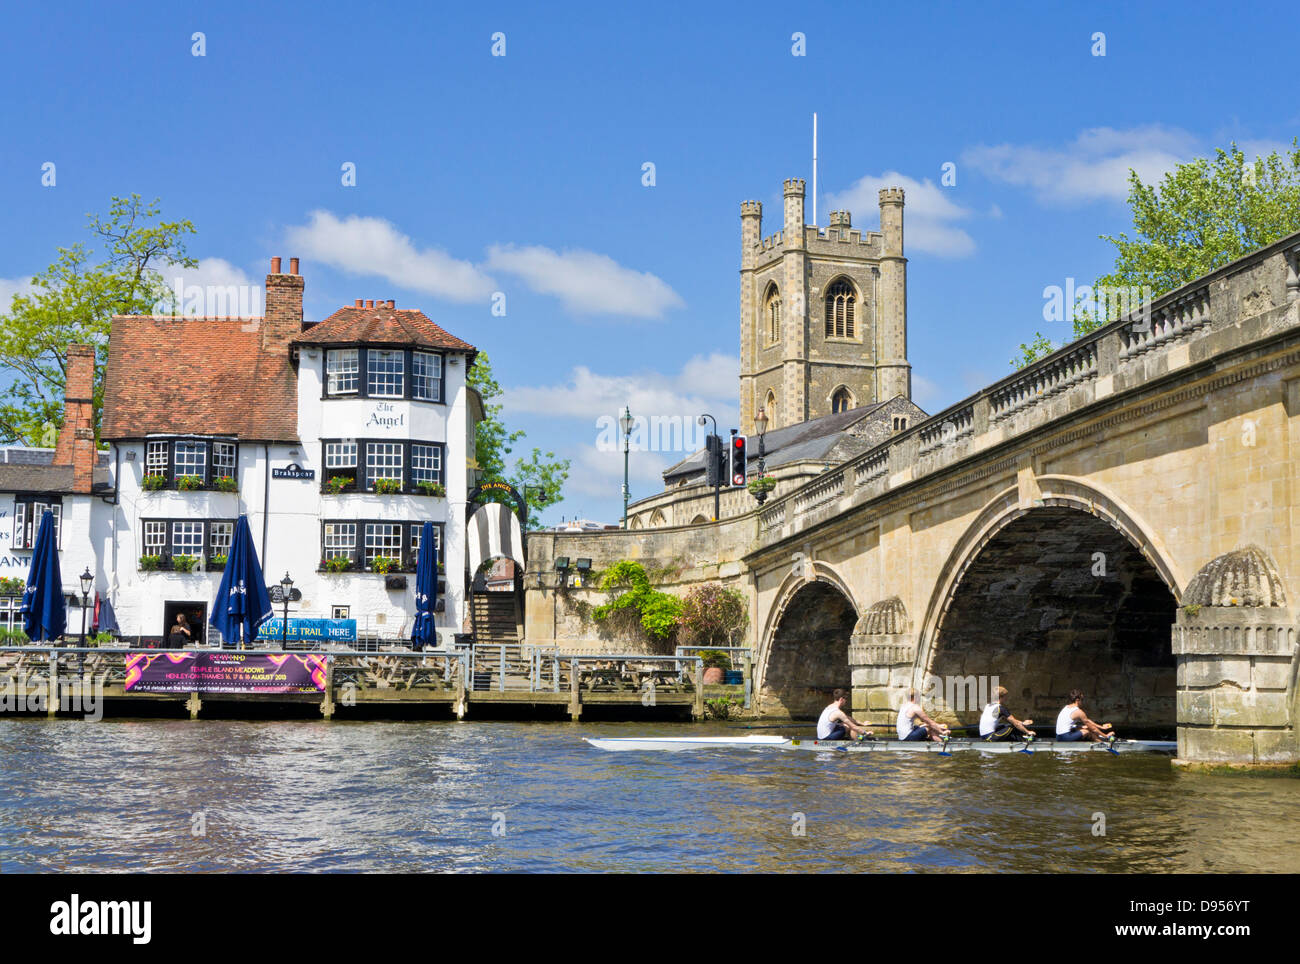 Rowers passing the Angel pub by Henley bridge over the River Thames Henley on Thames Oxfordshire England UK GB EU - Stock Image